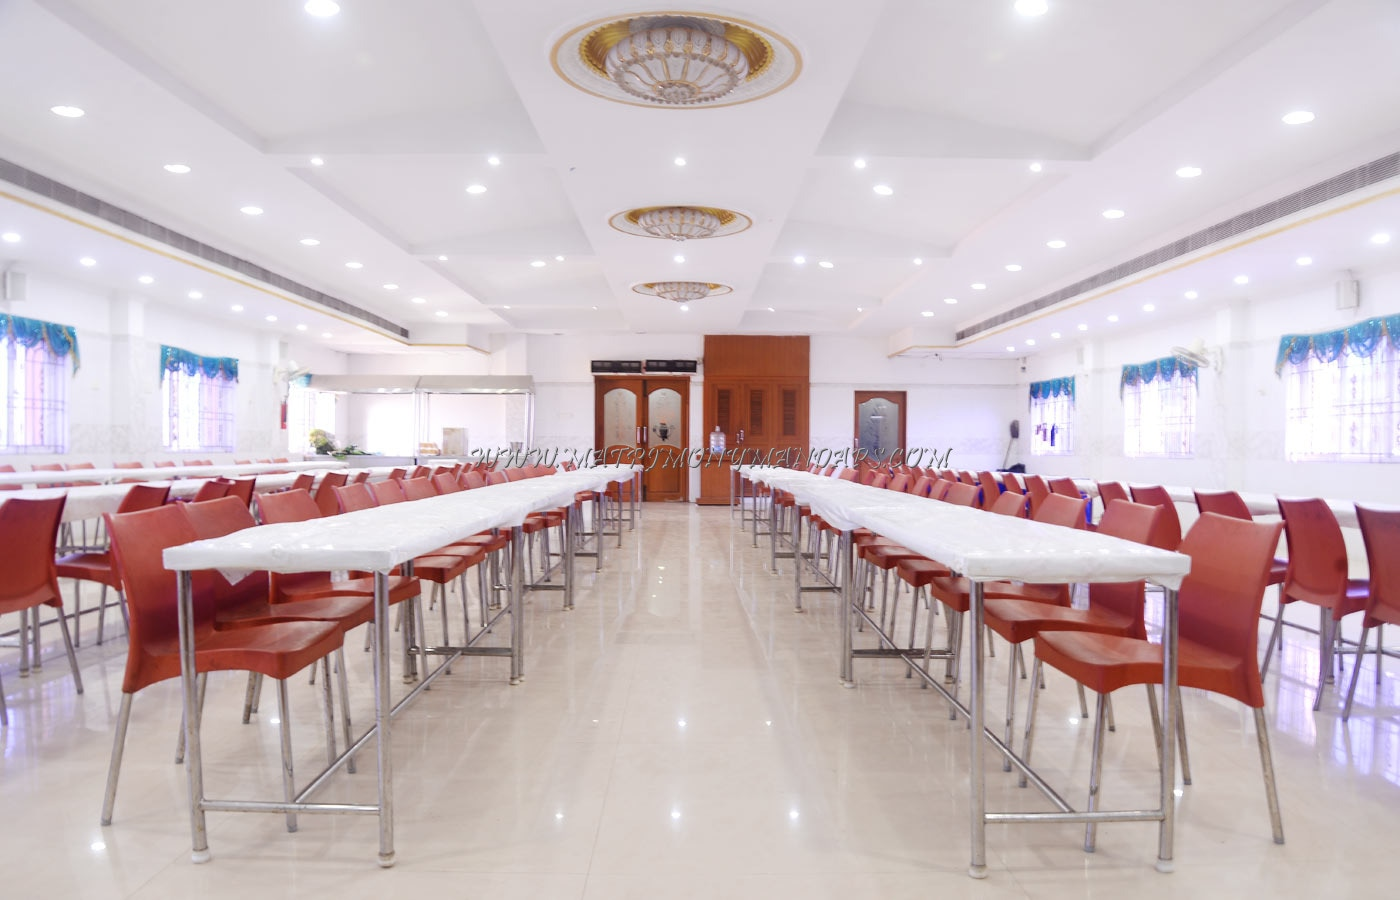 Find the availability of the JS Malini Mahal (A/C) in Kolathur, Chennai and avail special offers